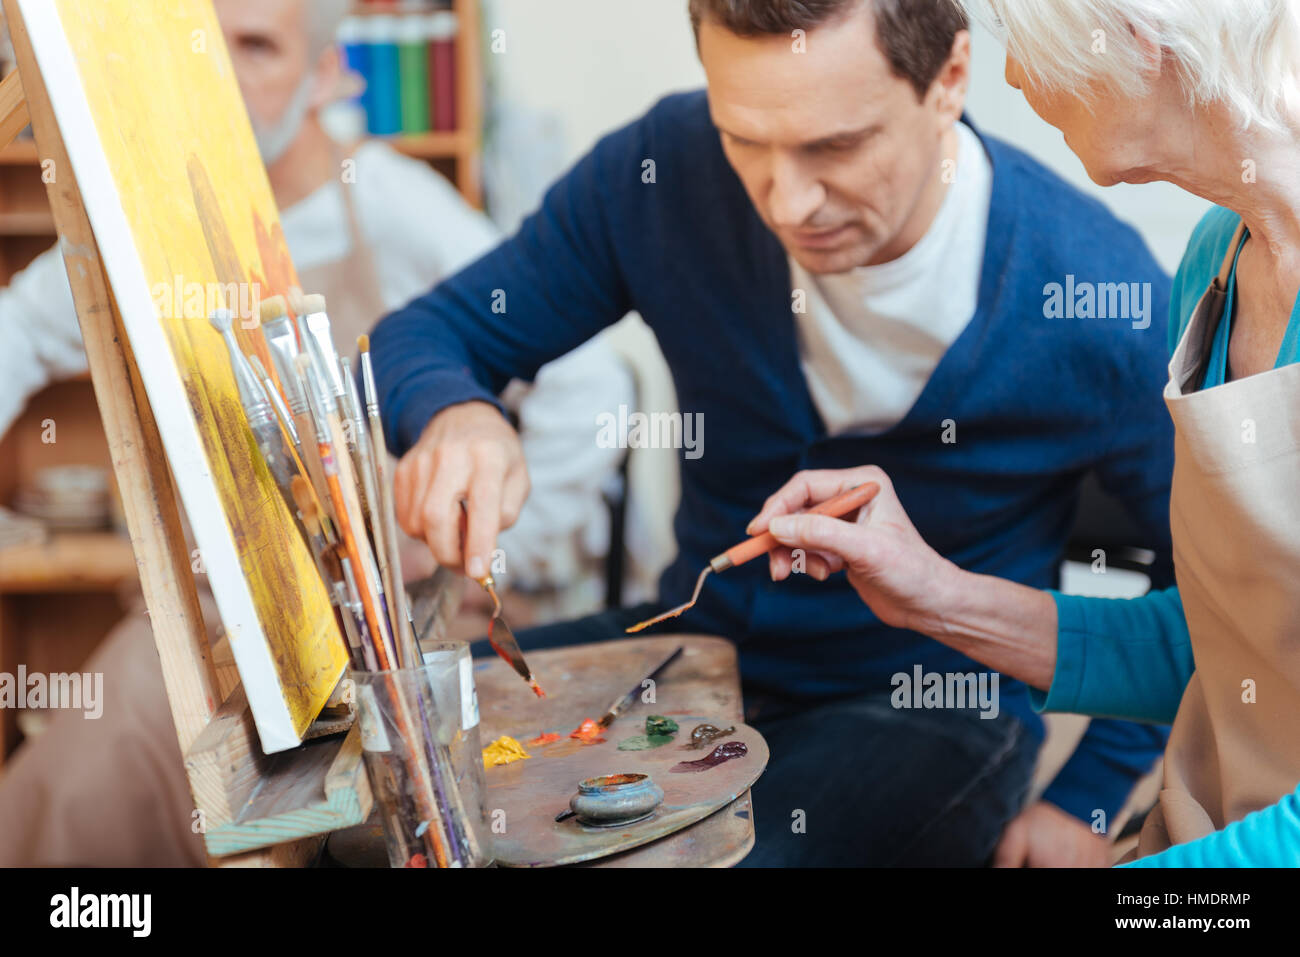 Delighted artist helping elderly woman in painting - Stock Image